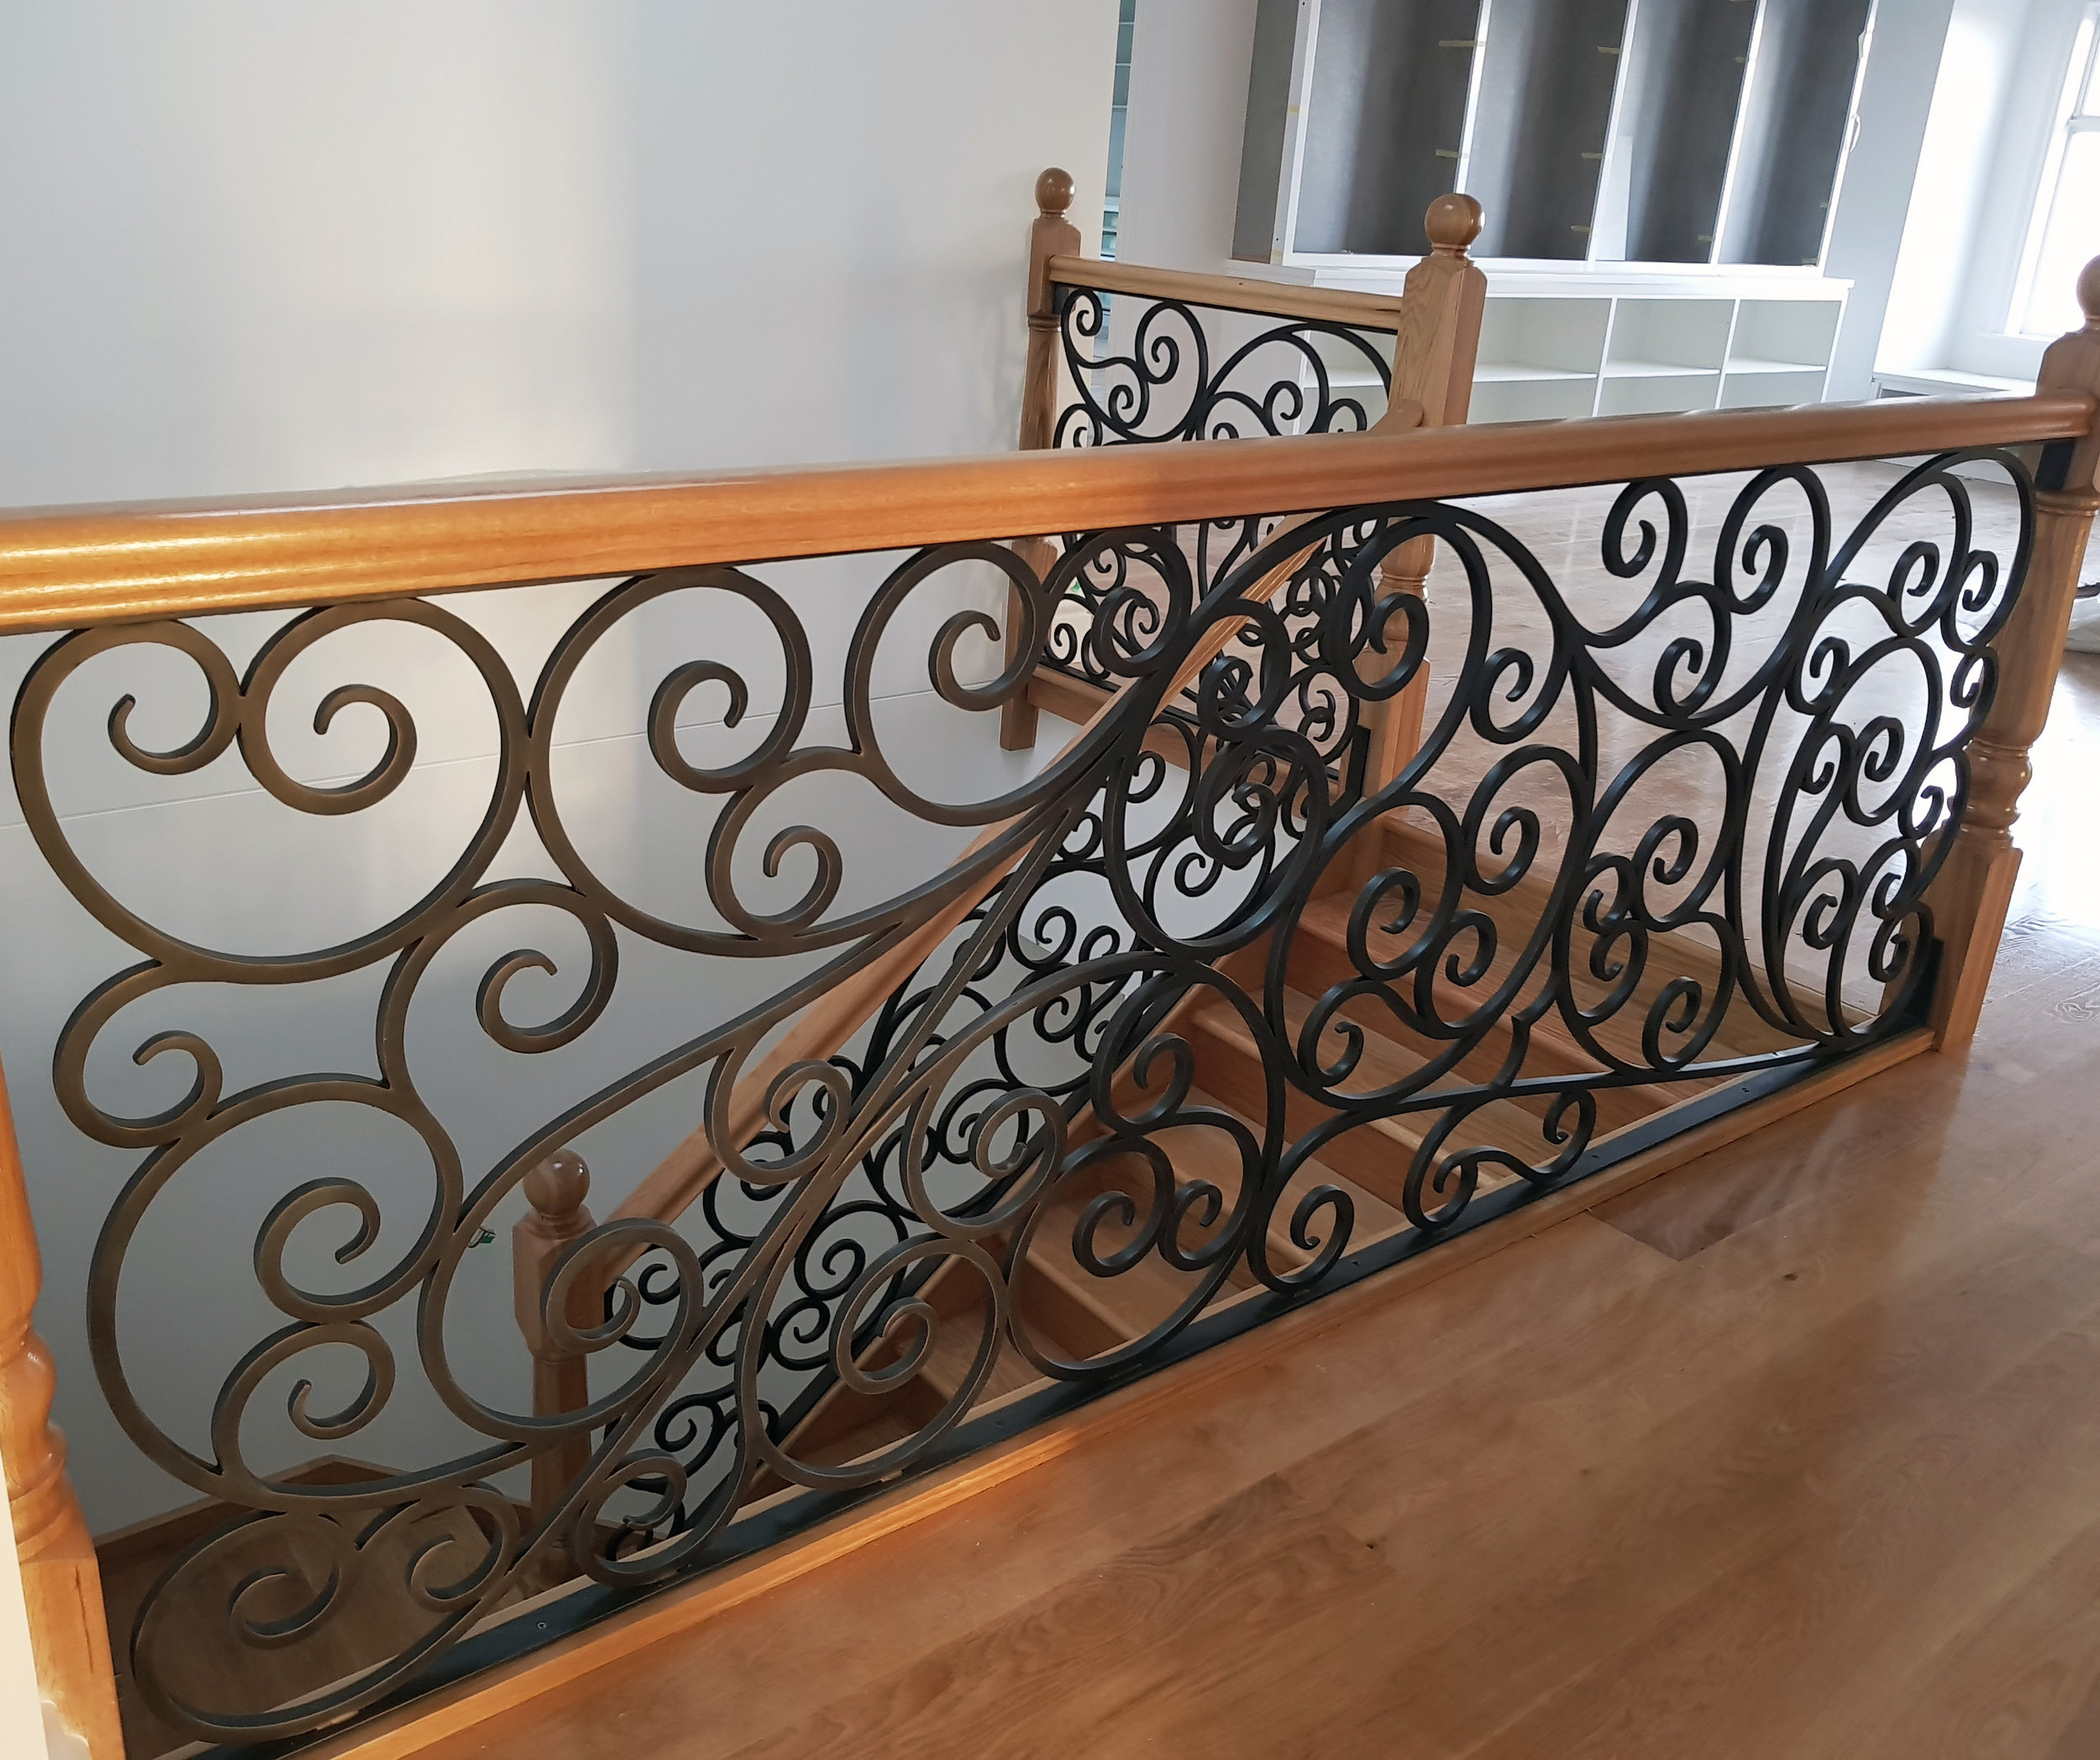 Wood and Iron Staircase Railings, Melbourne.